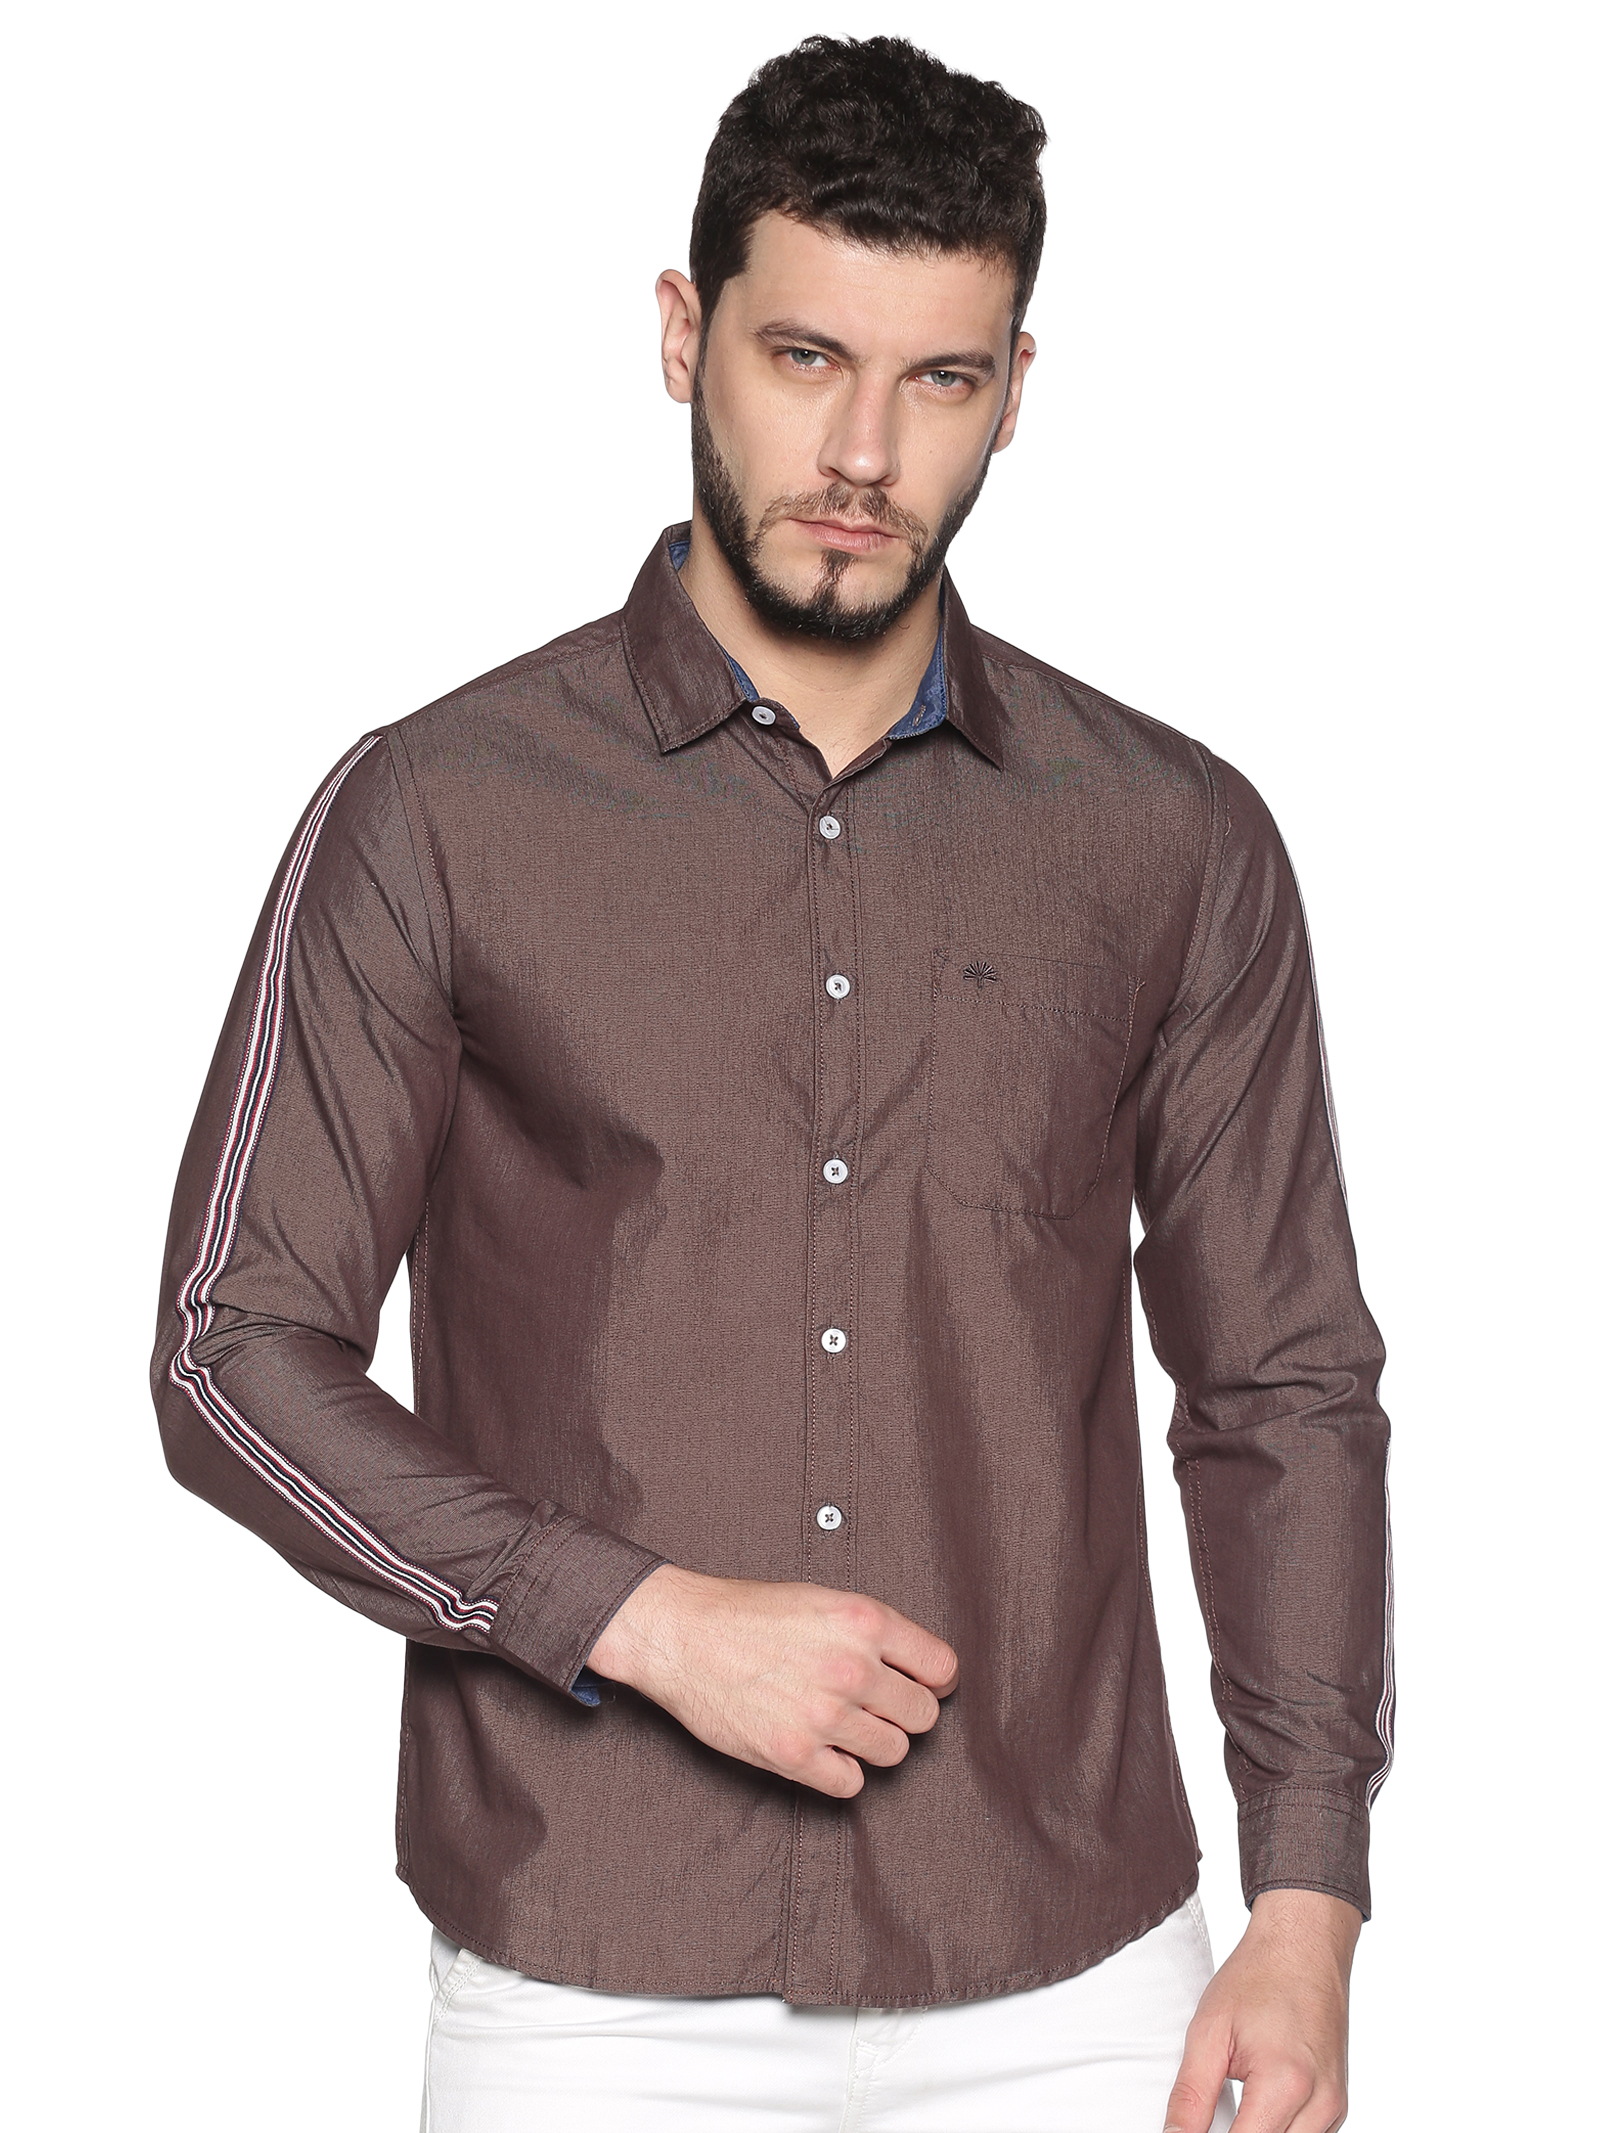 Chennis | Chennis Men's Brown Cotton Casual Shirt With Side Tape on Sleeves